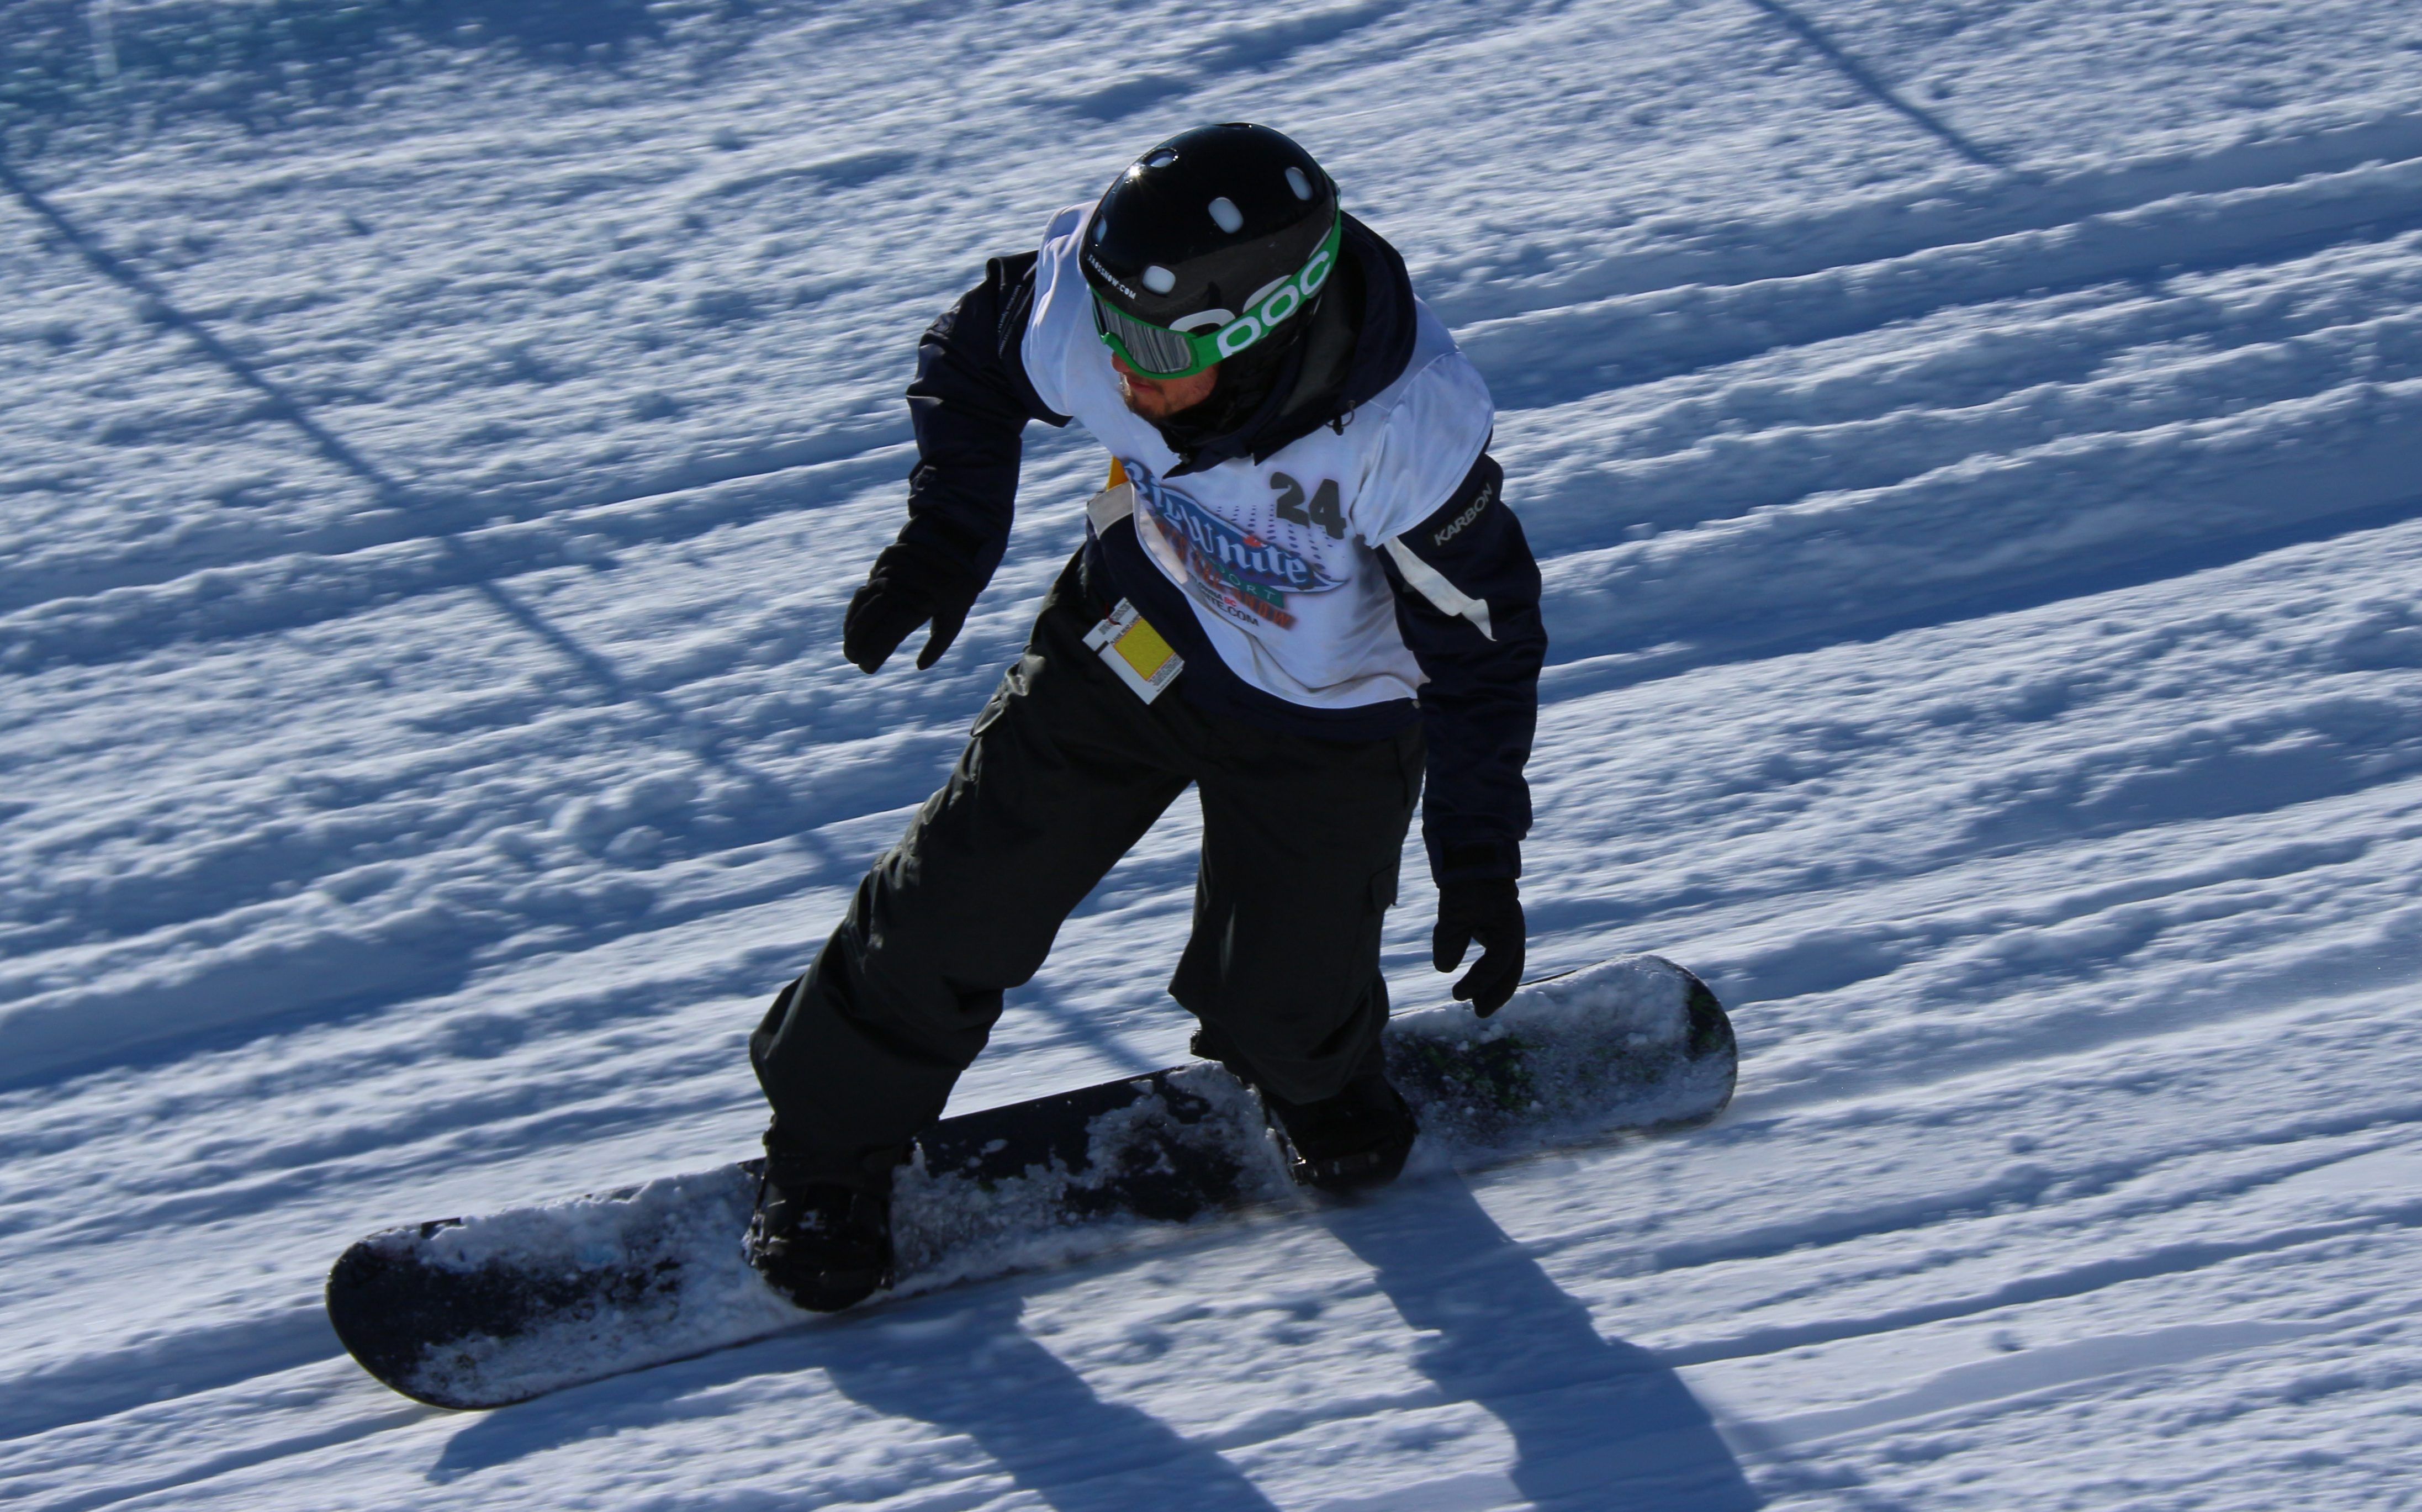 A statement from the parents of Para-snowboarder Matthew Robinson